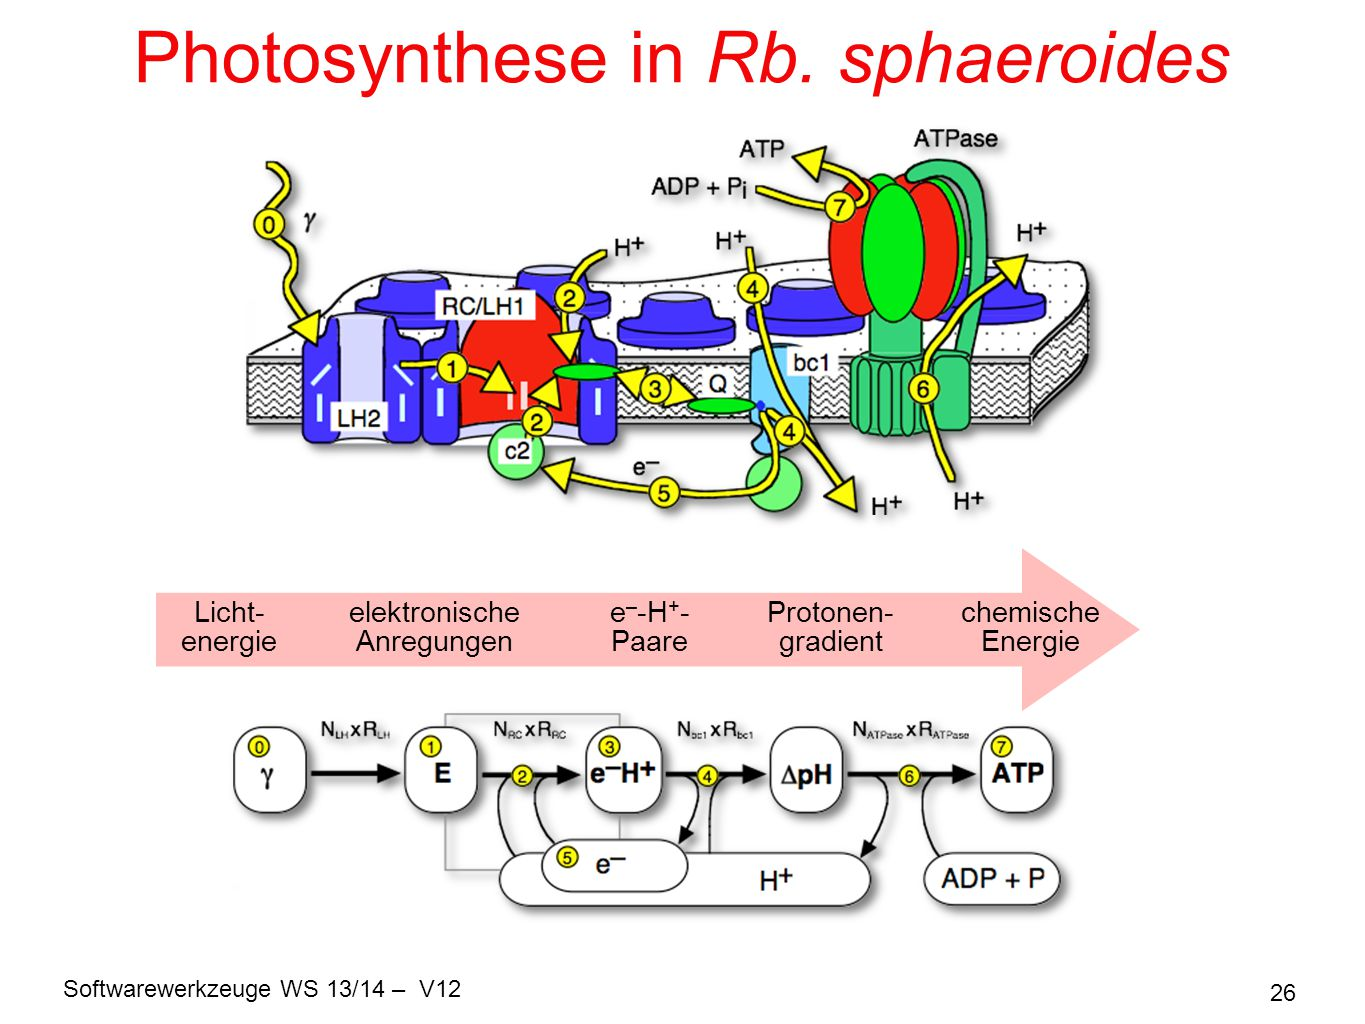 Photosynthese in Rb. sphaeroides